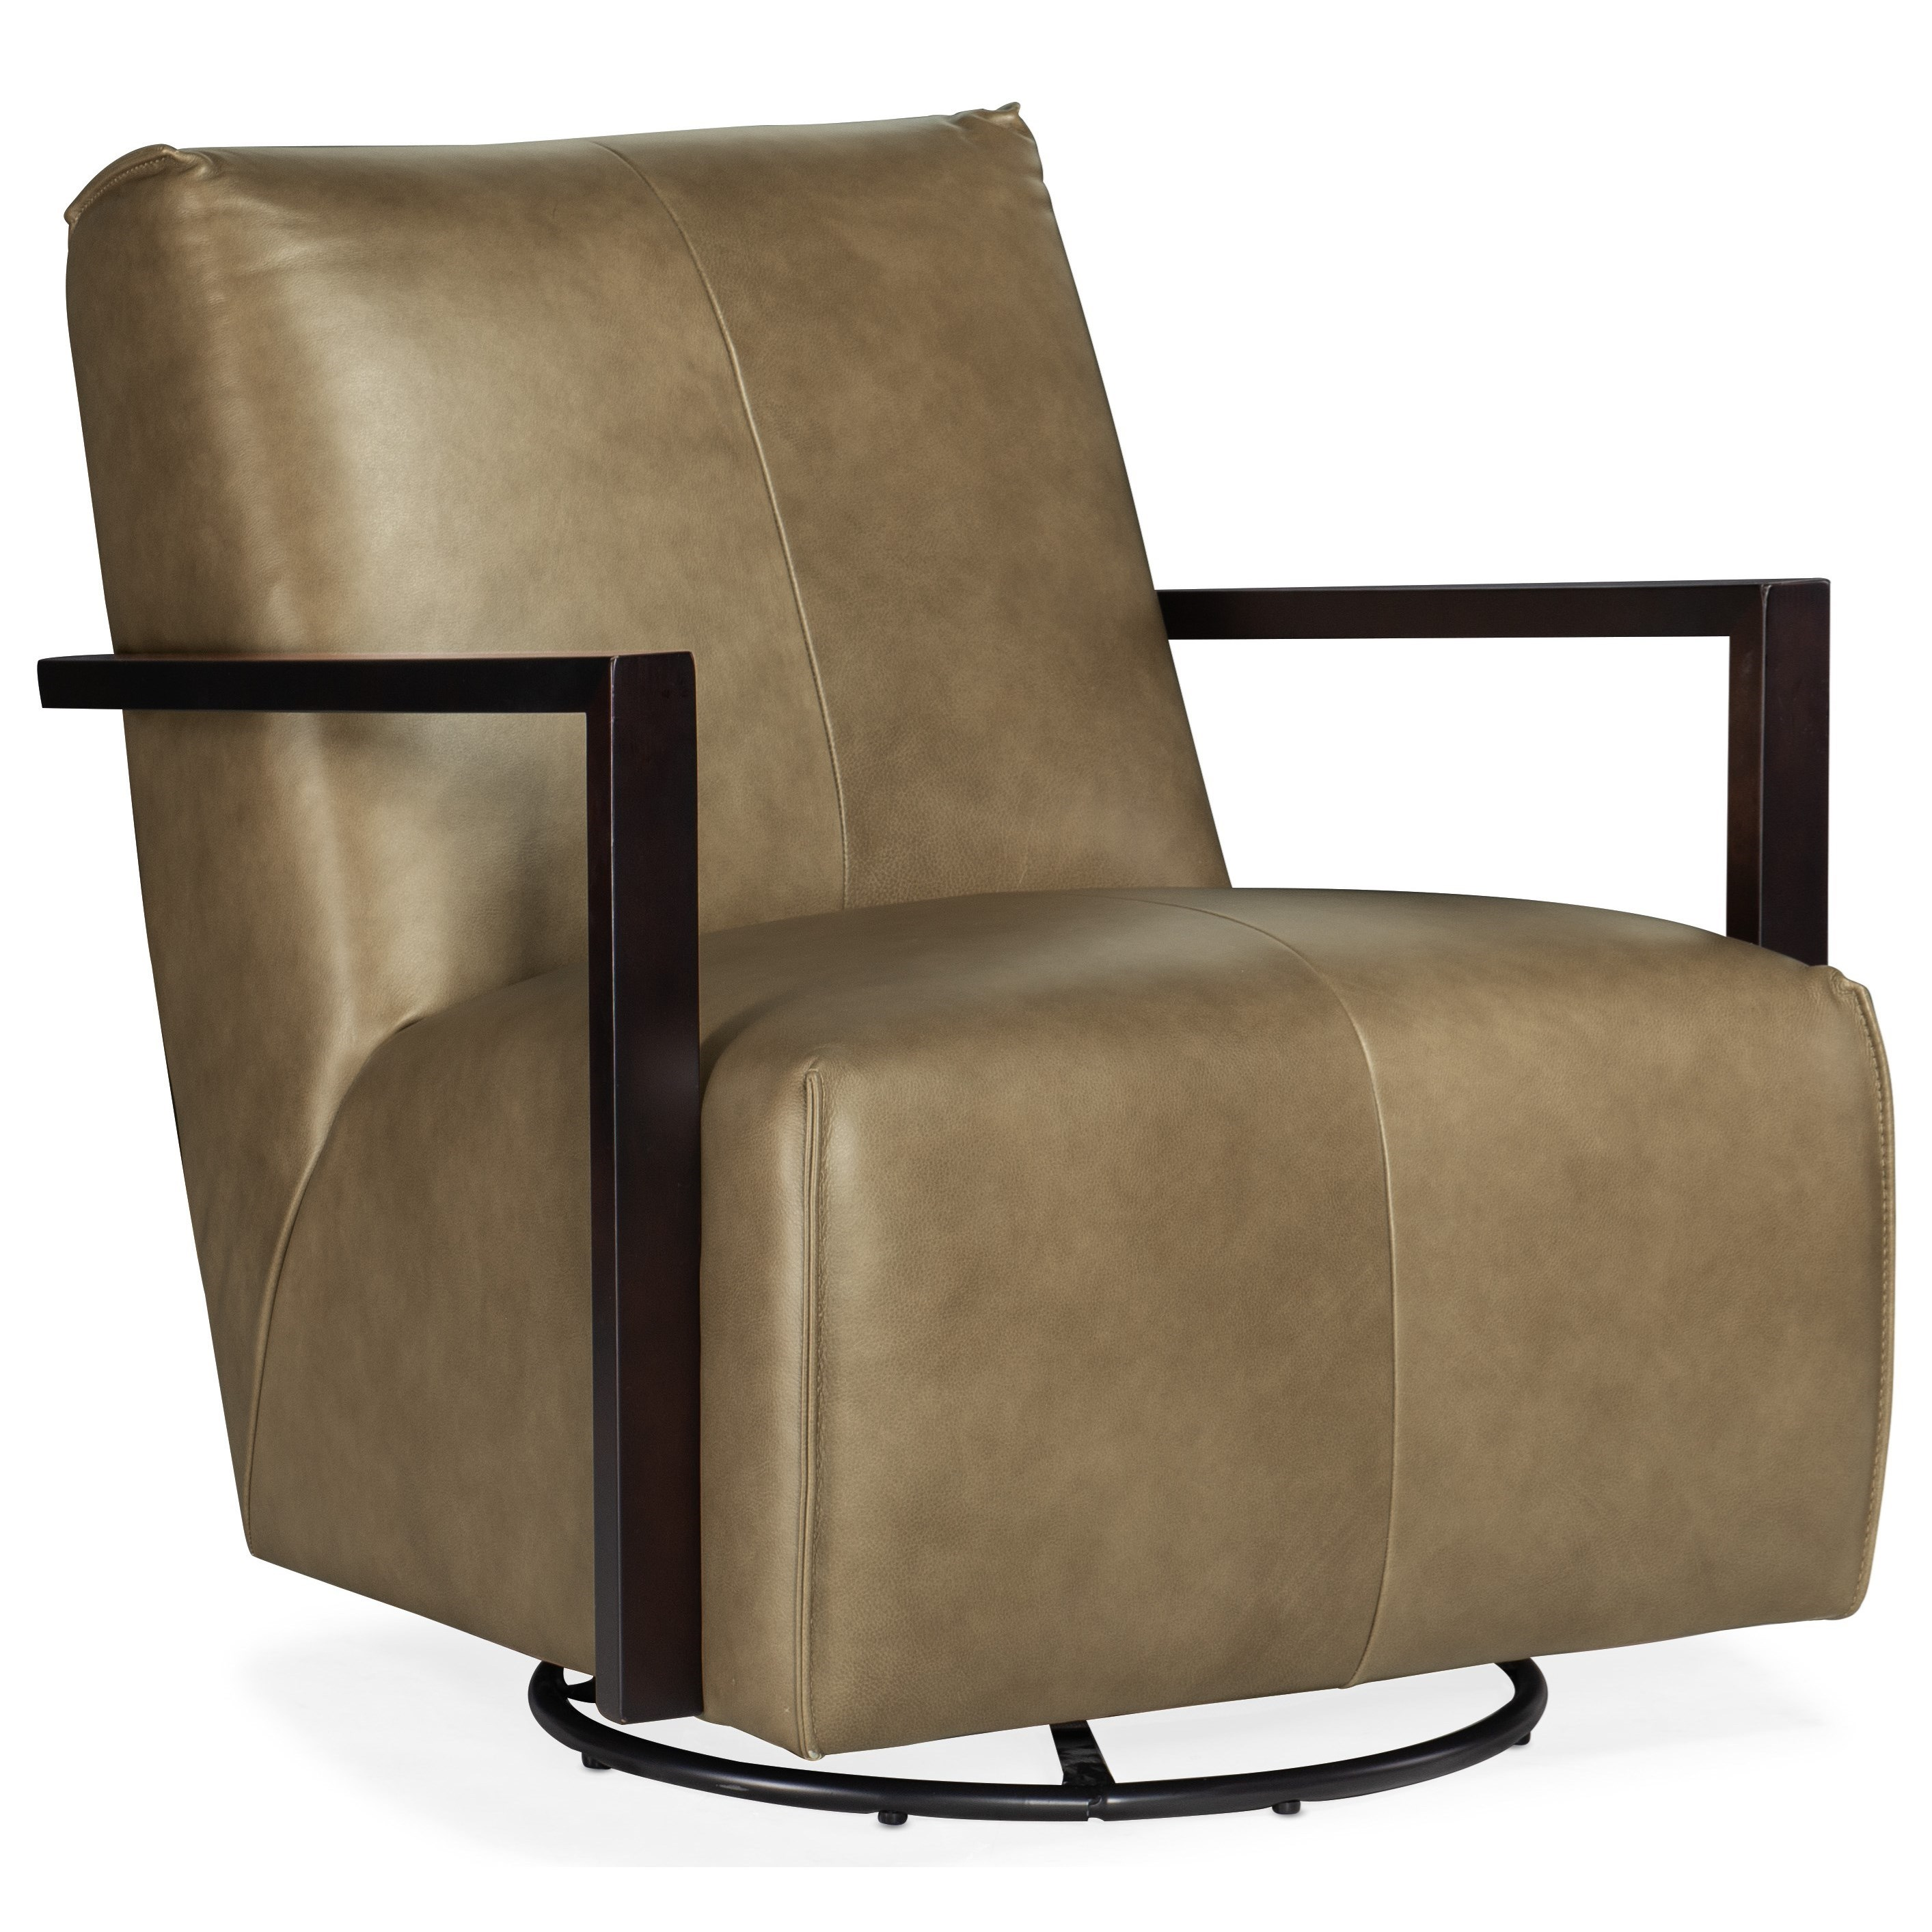 Club Chairs Modestus Exposed Arm Swivel Glide Club Chair by Hooker Furniture at Baer's Furniture